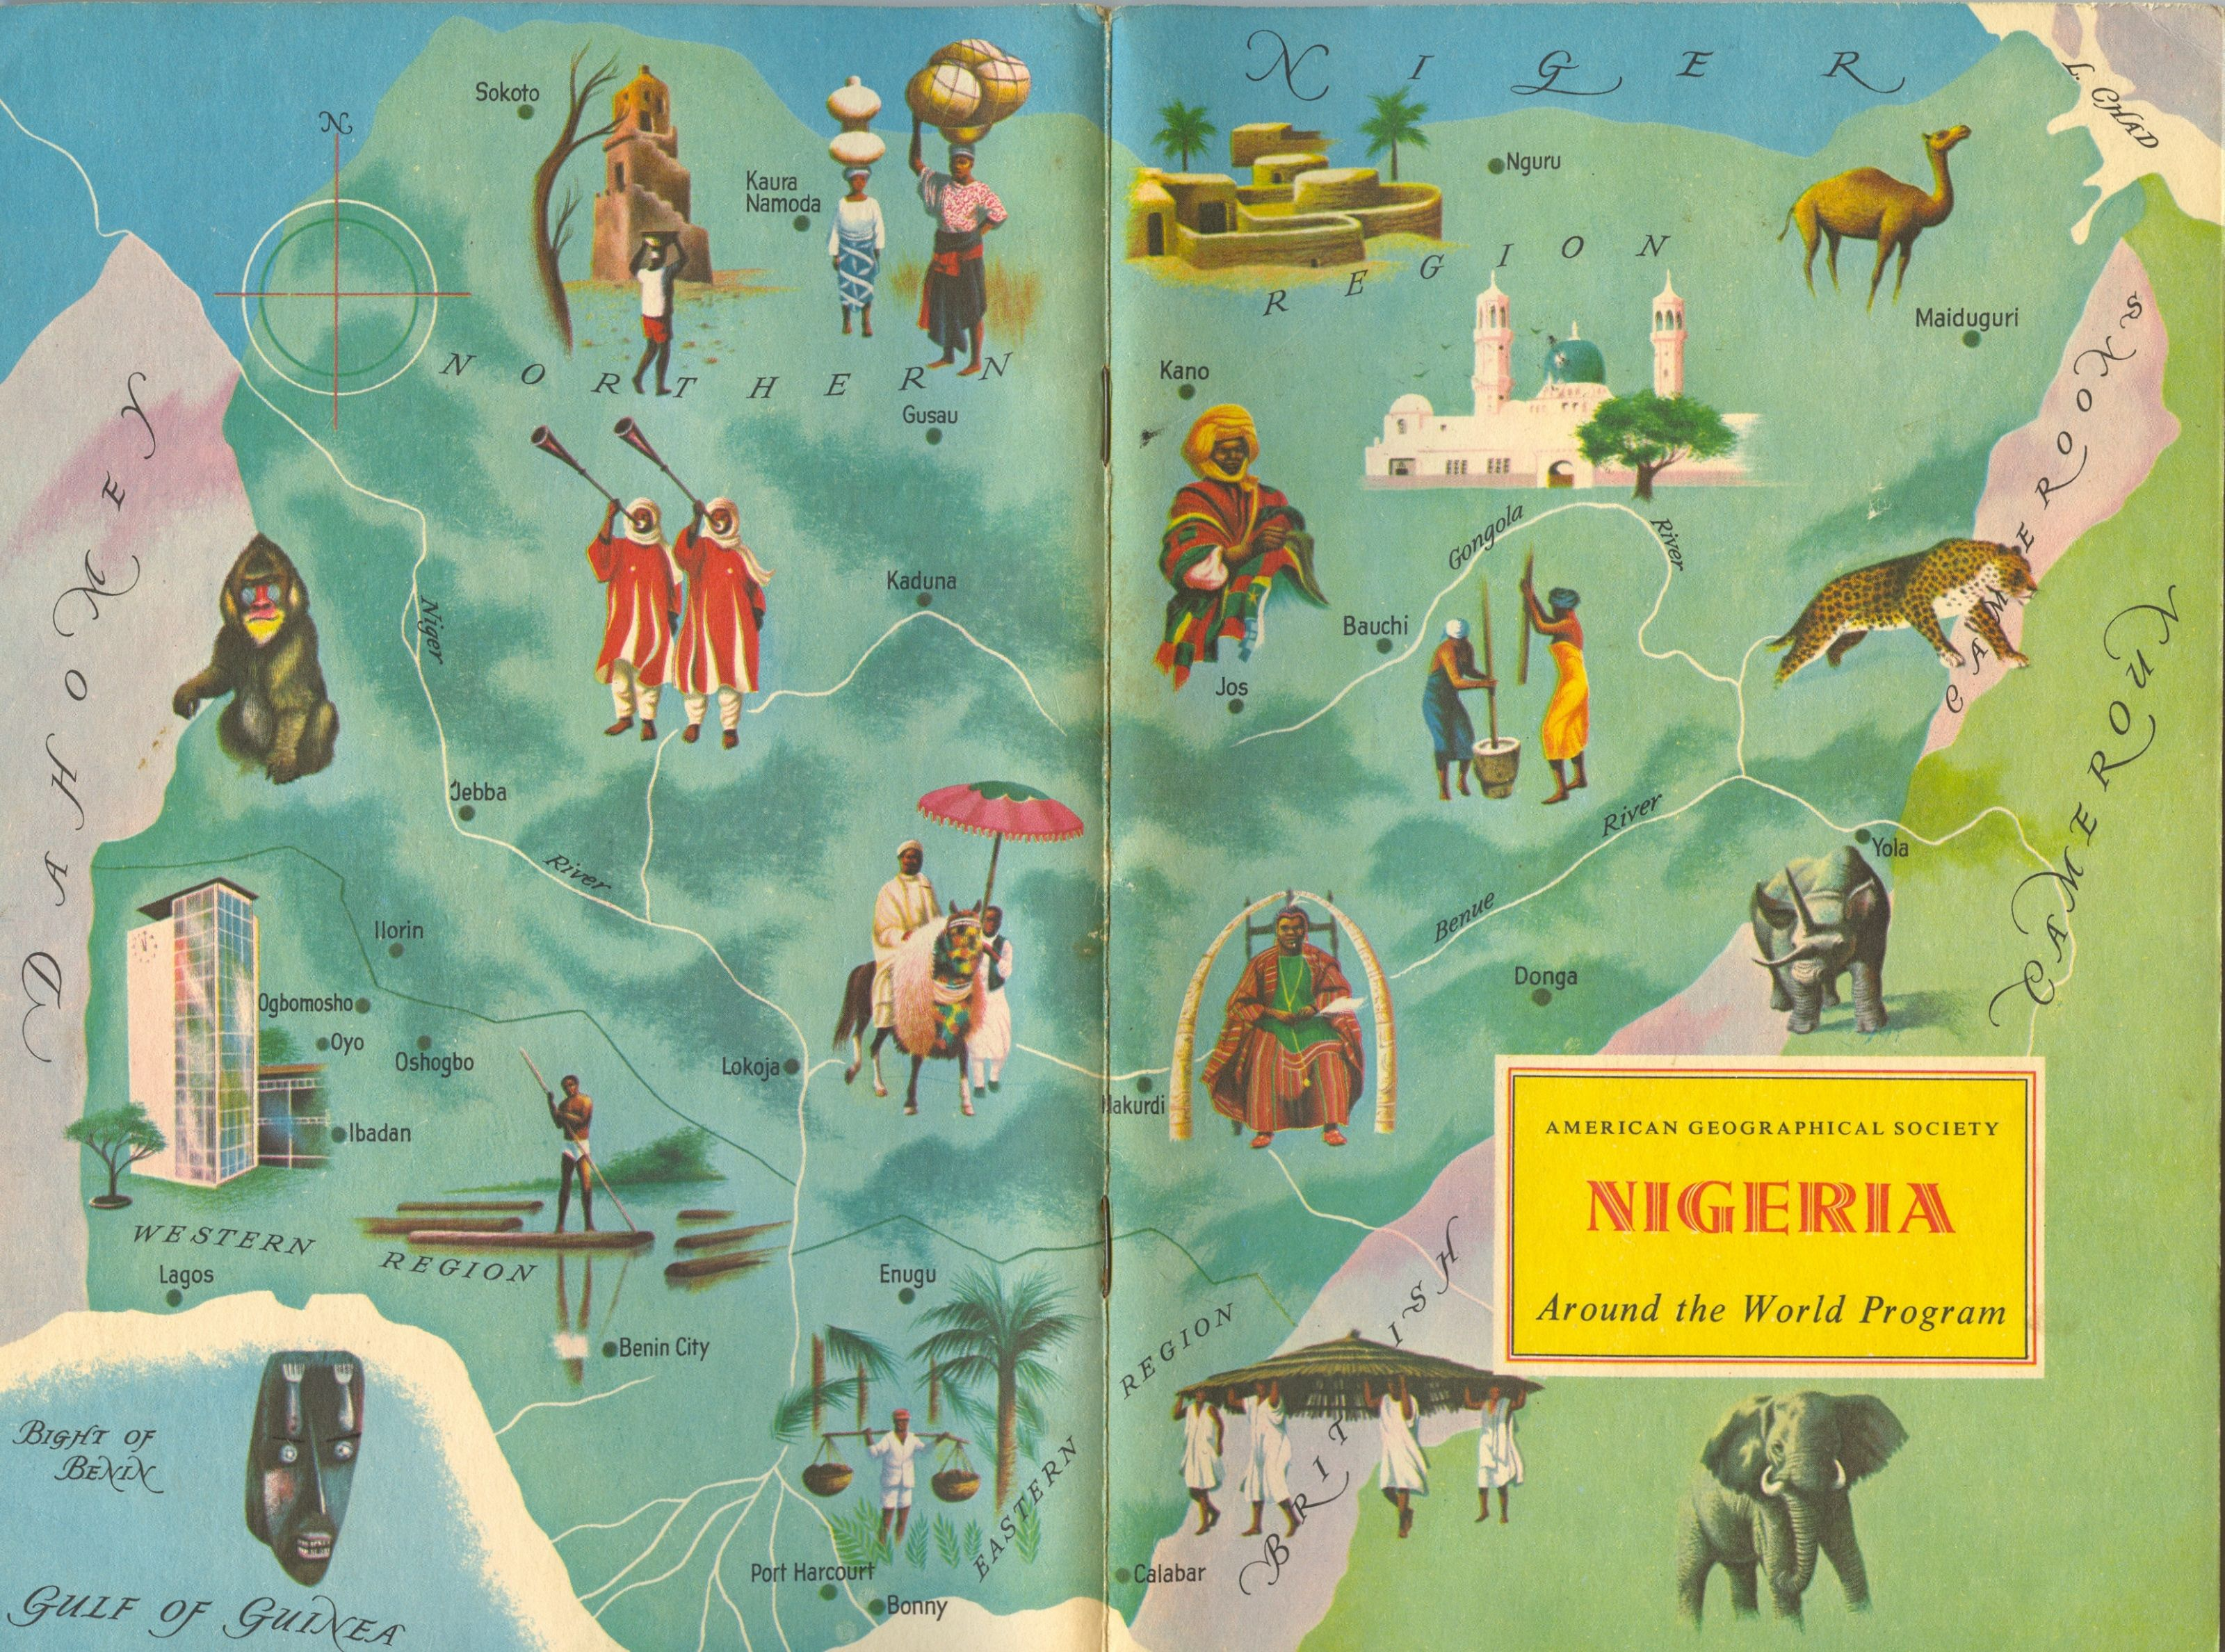 Nigeria american geographical society around the world program nigeria american geographical society around the world program vintage map book cover gumiabroncs Image collections